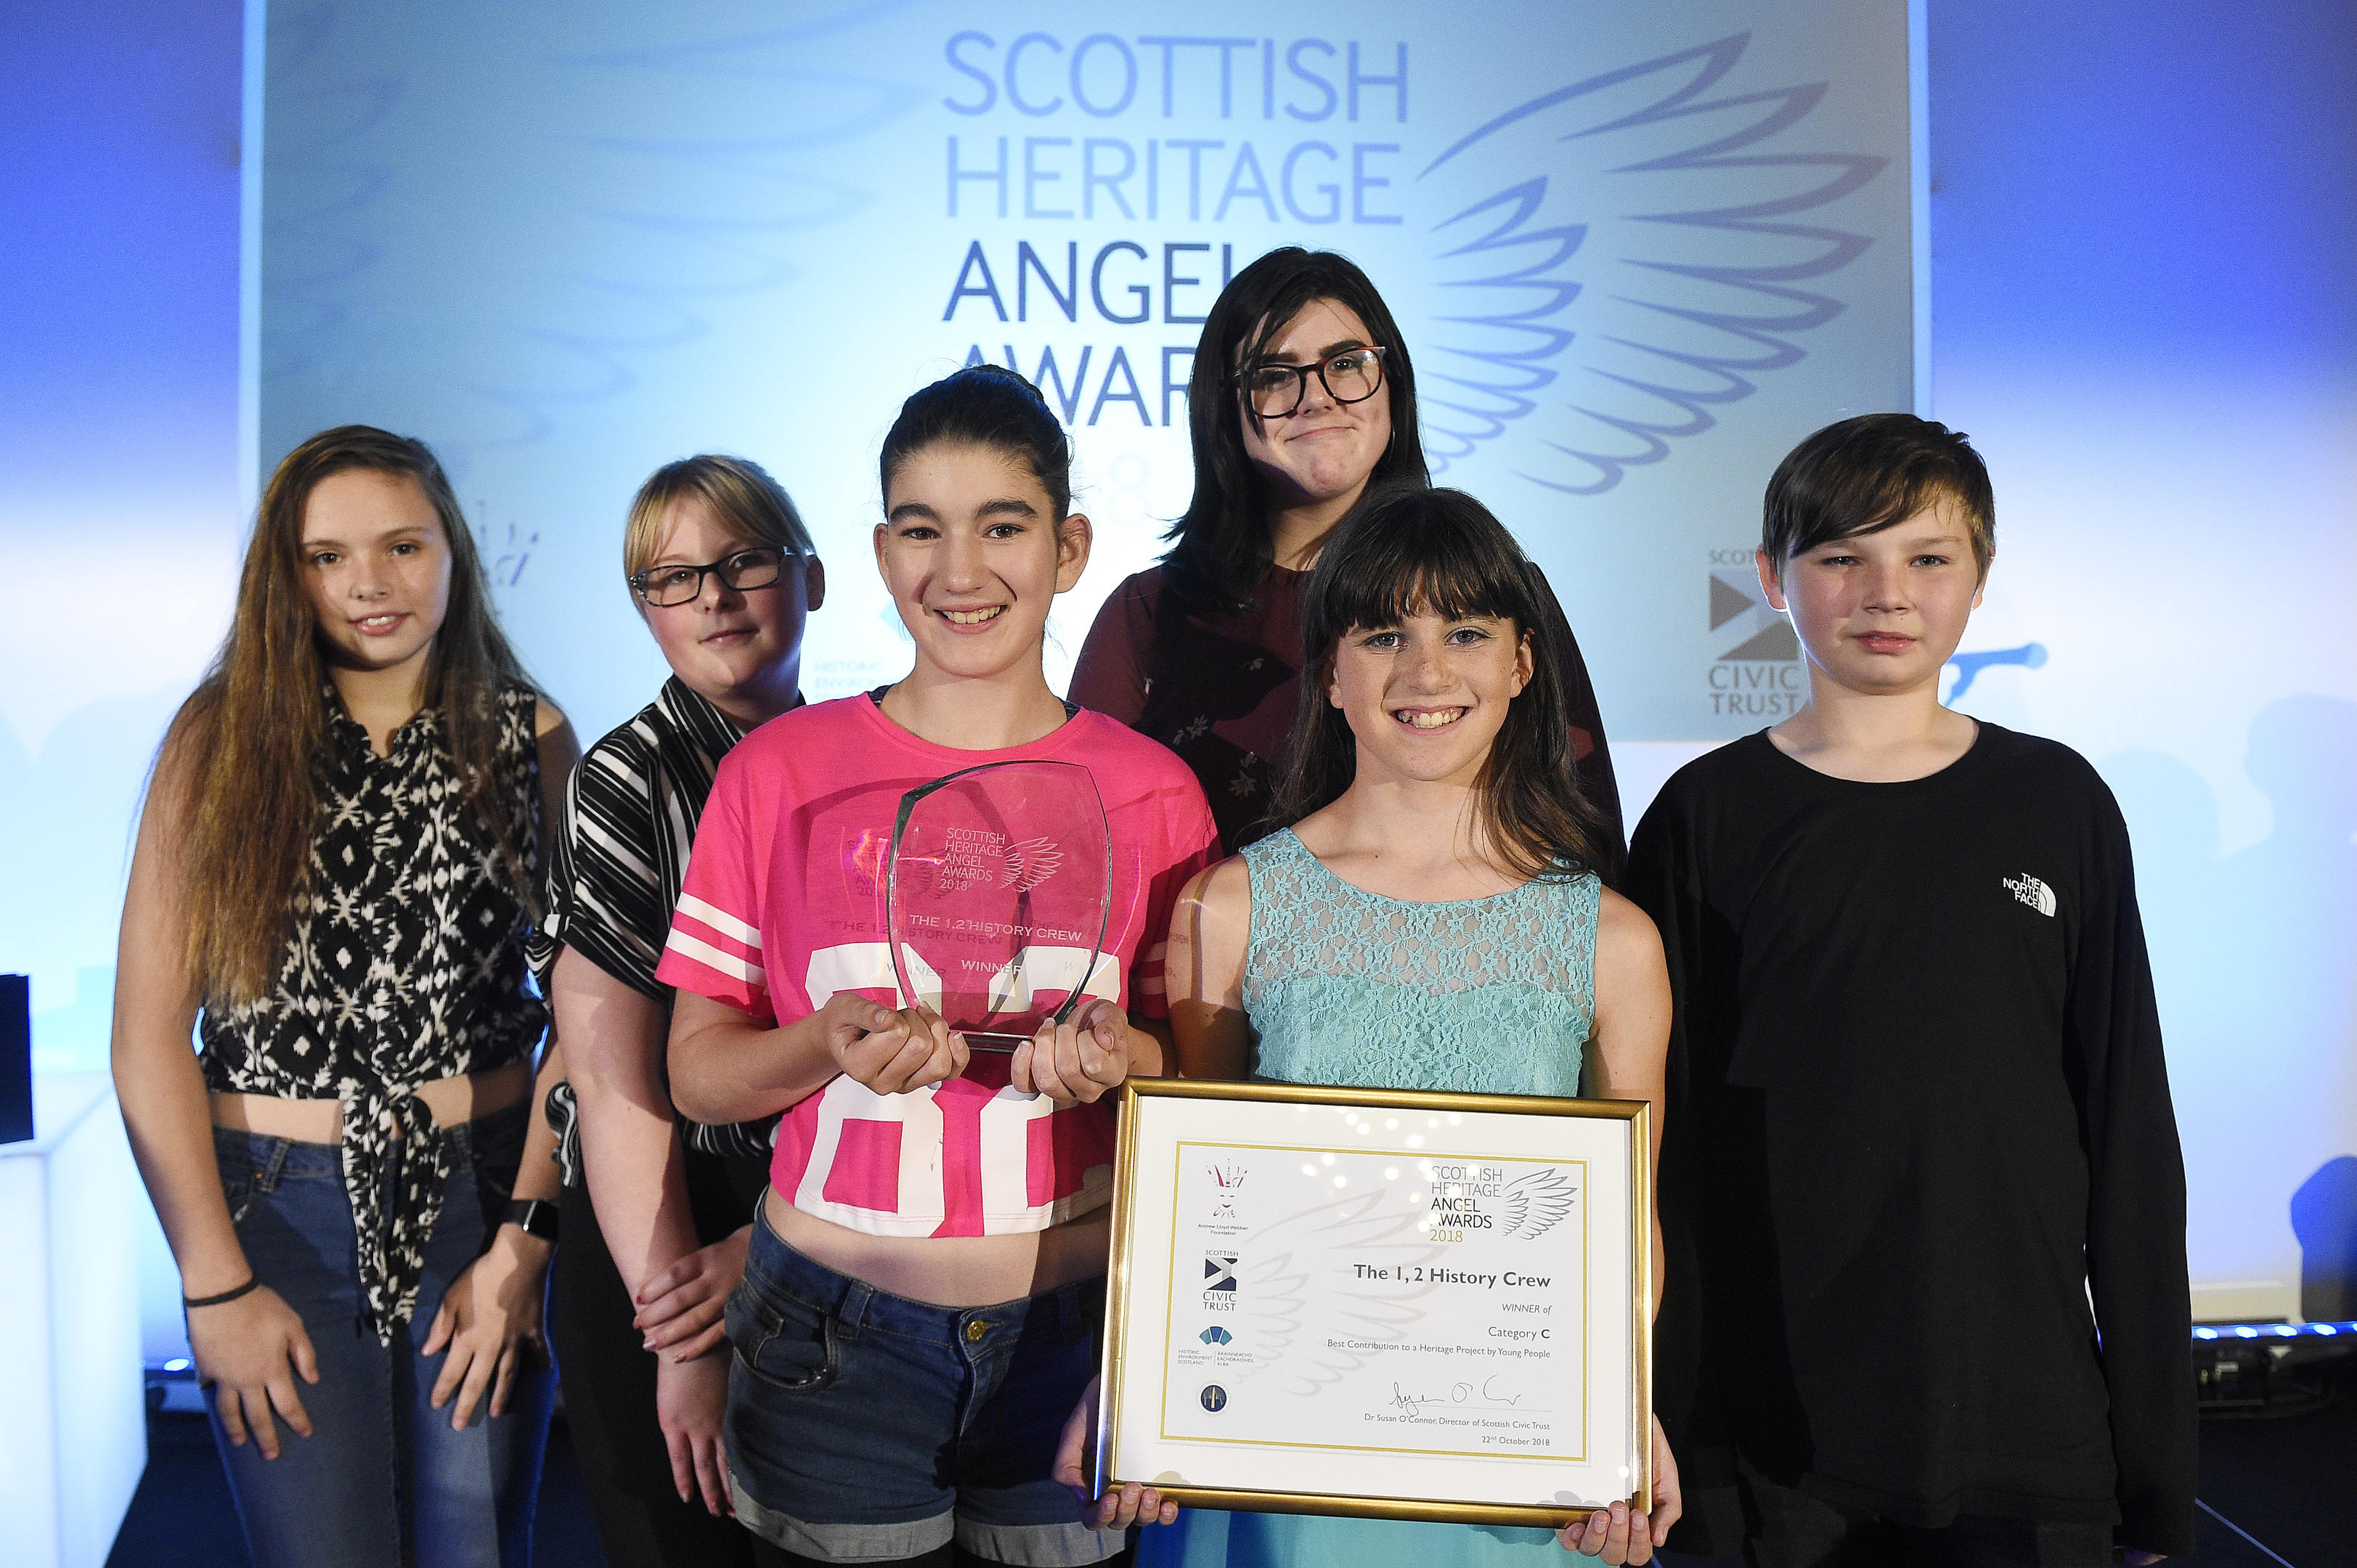 The triumphant 1,2 History Crew from Arbroath Academy